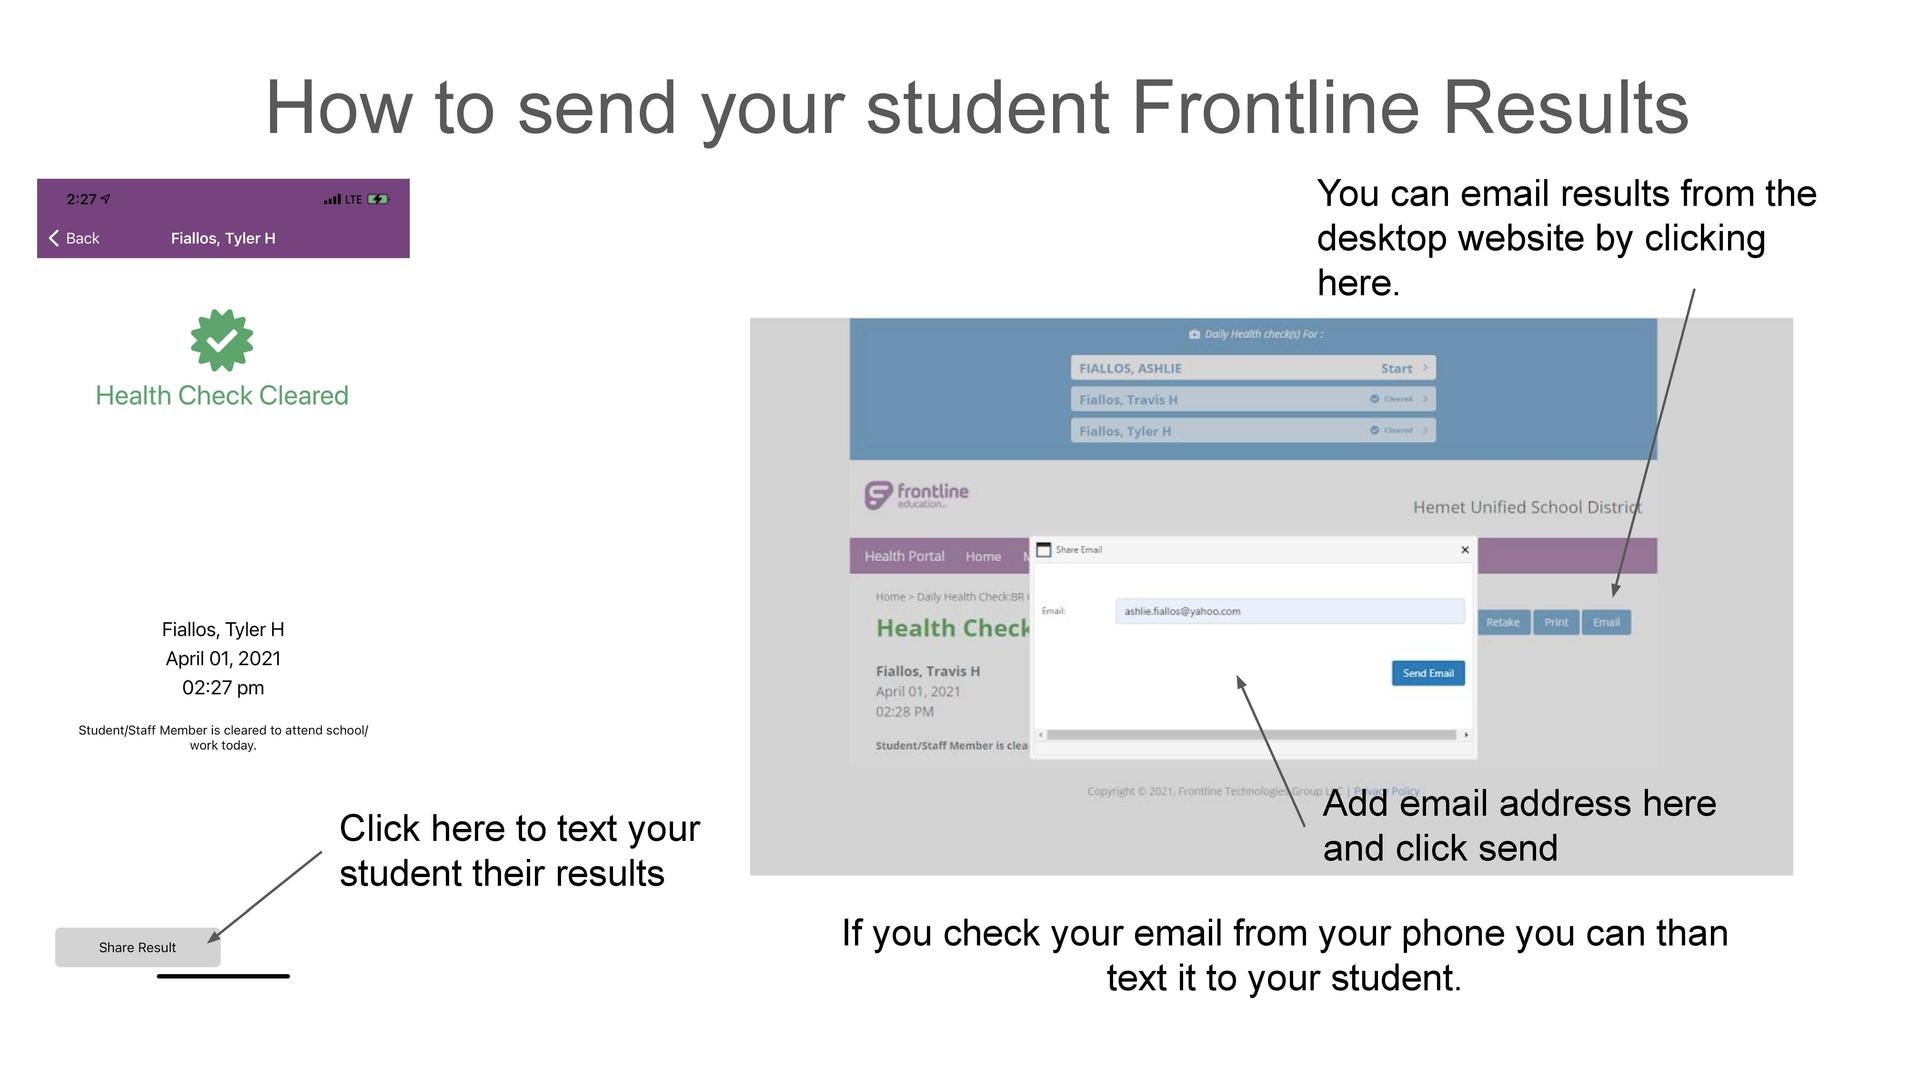 How to share your Frontline results